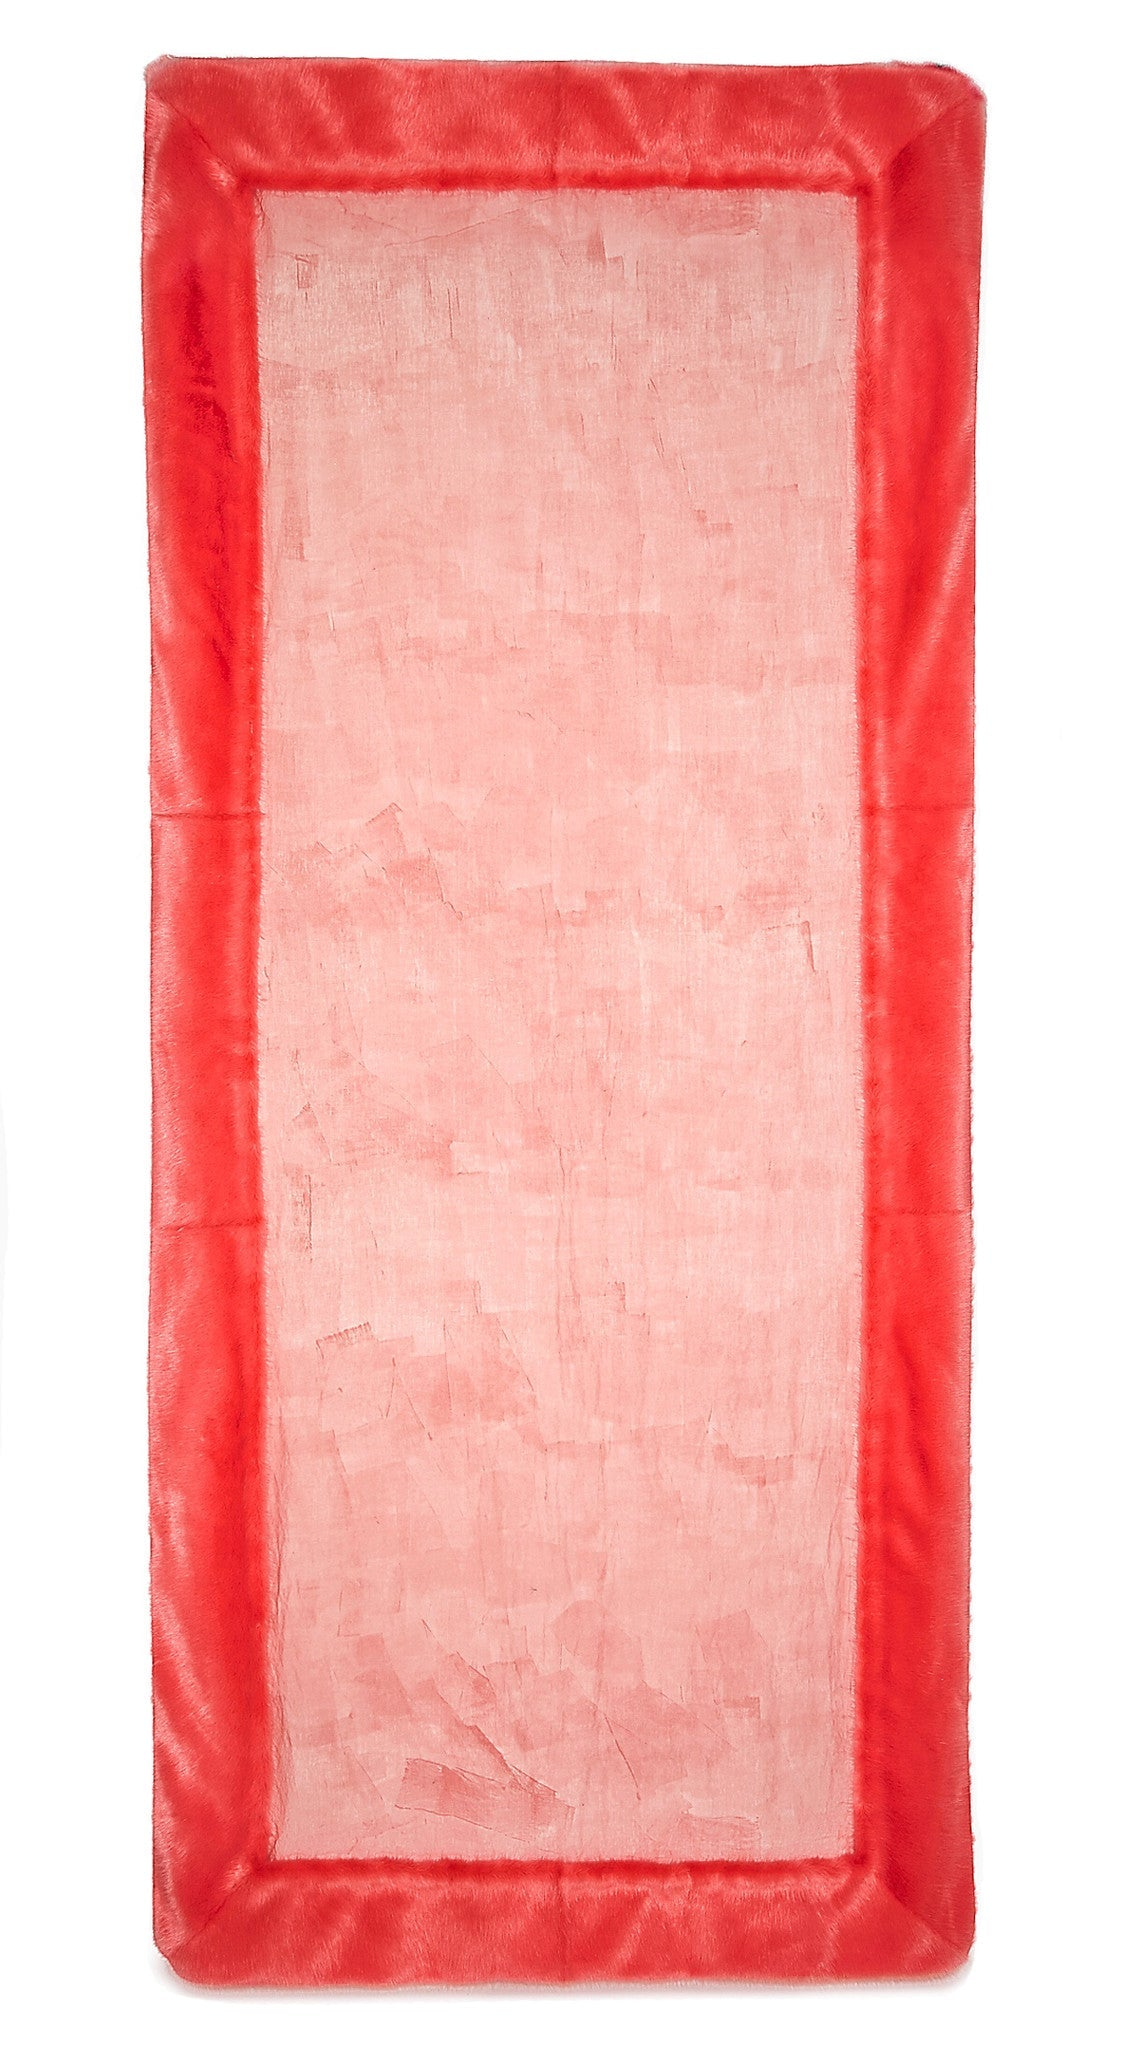 S&B x Shrimps Hand Painted Linen and Faux Fur Tablecloth in Powder Pink